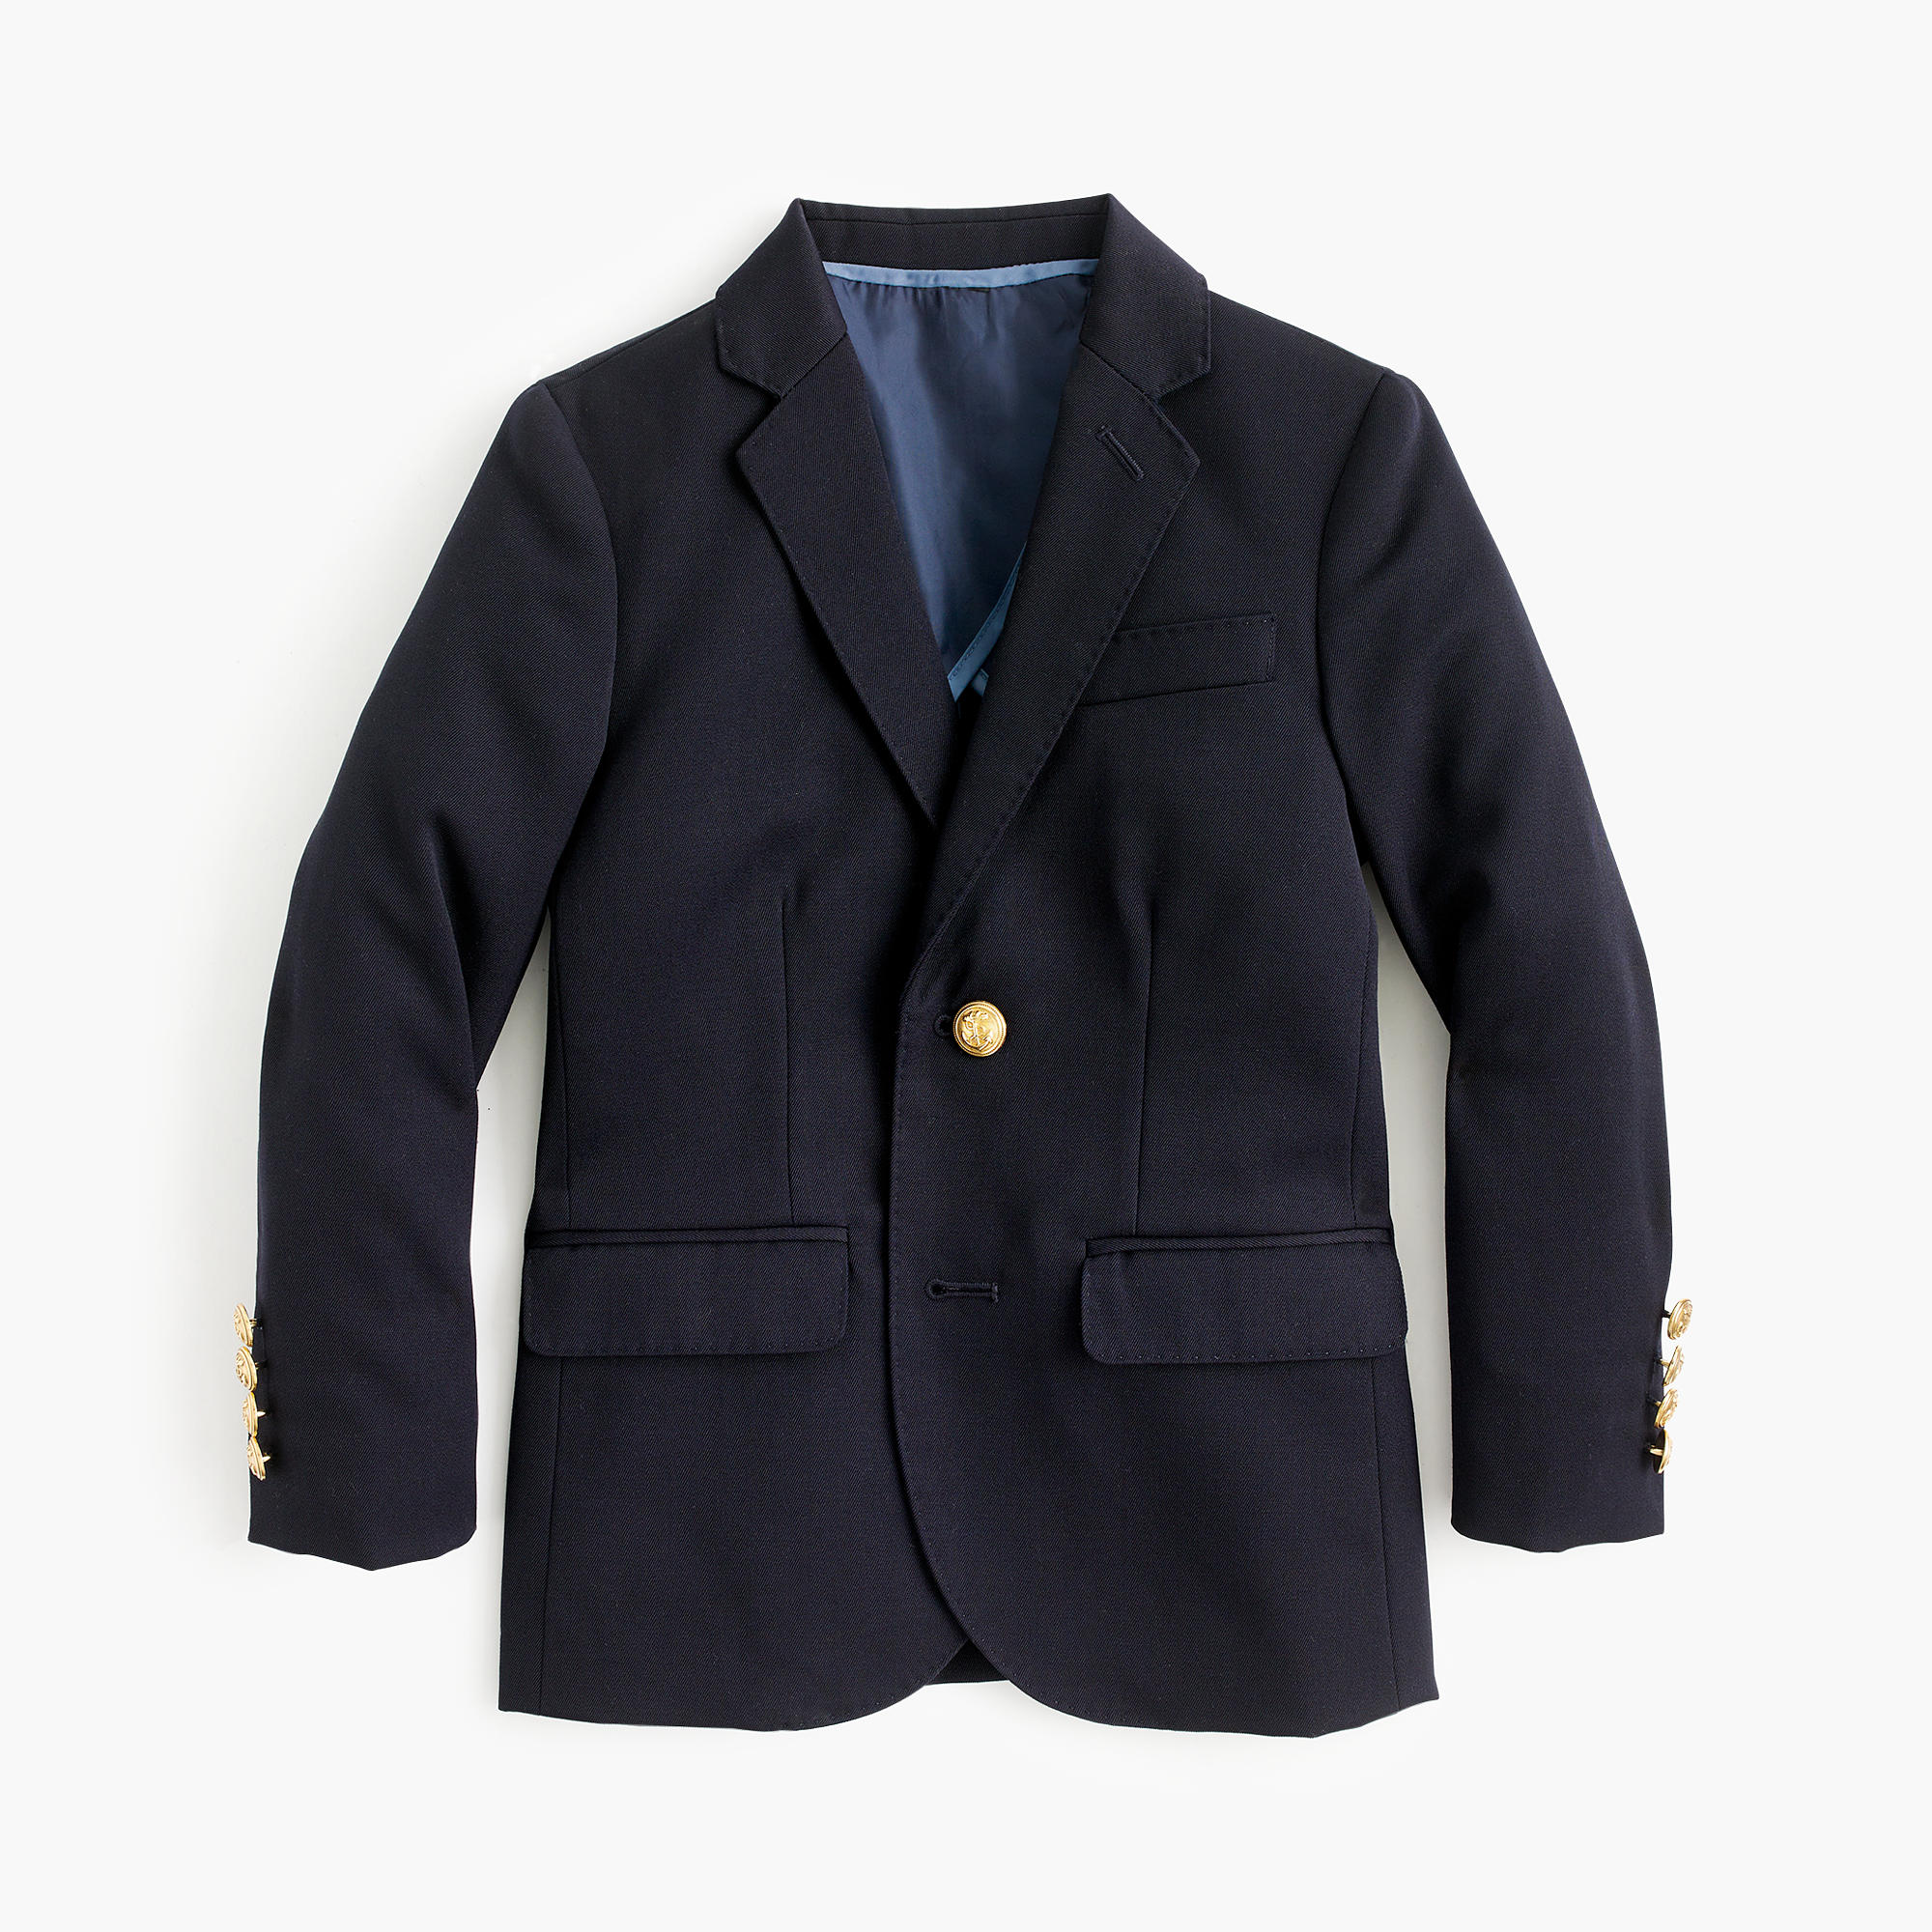 For the boys, check out our selection of suit jackets and blazers from Calvin Klein, Lauren Ralph Lauren and Tommy Hilfiger for debonair style no matter where you're headed. Dapper Little Dude Ideal for semi-formal and formal occasions, a blazer is the perfect piece to dress up a casual outfit with sharpness.